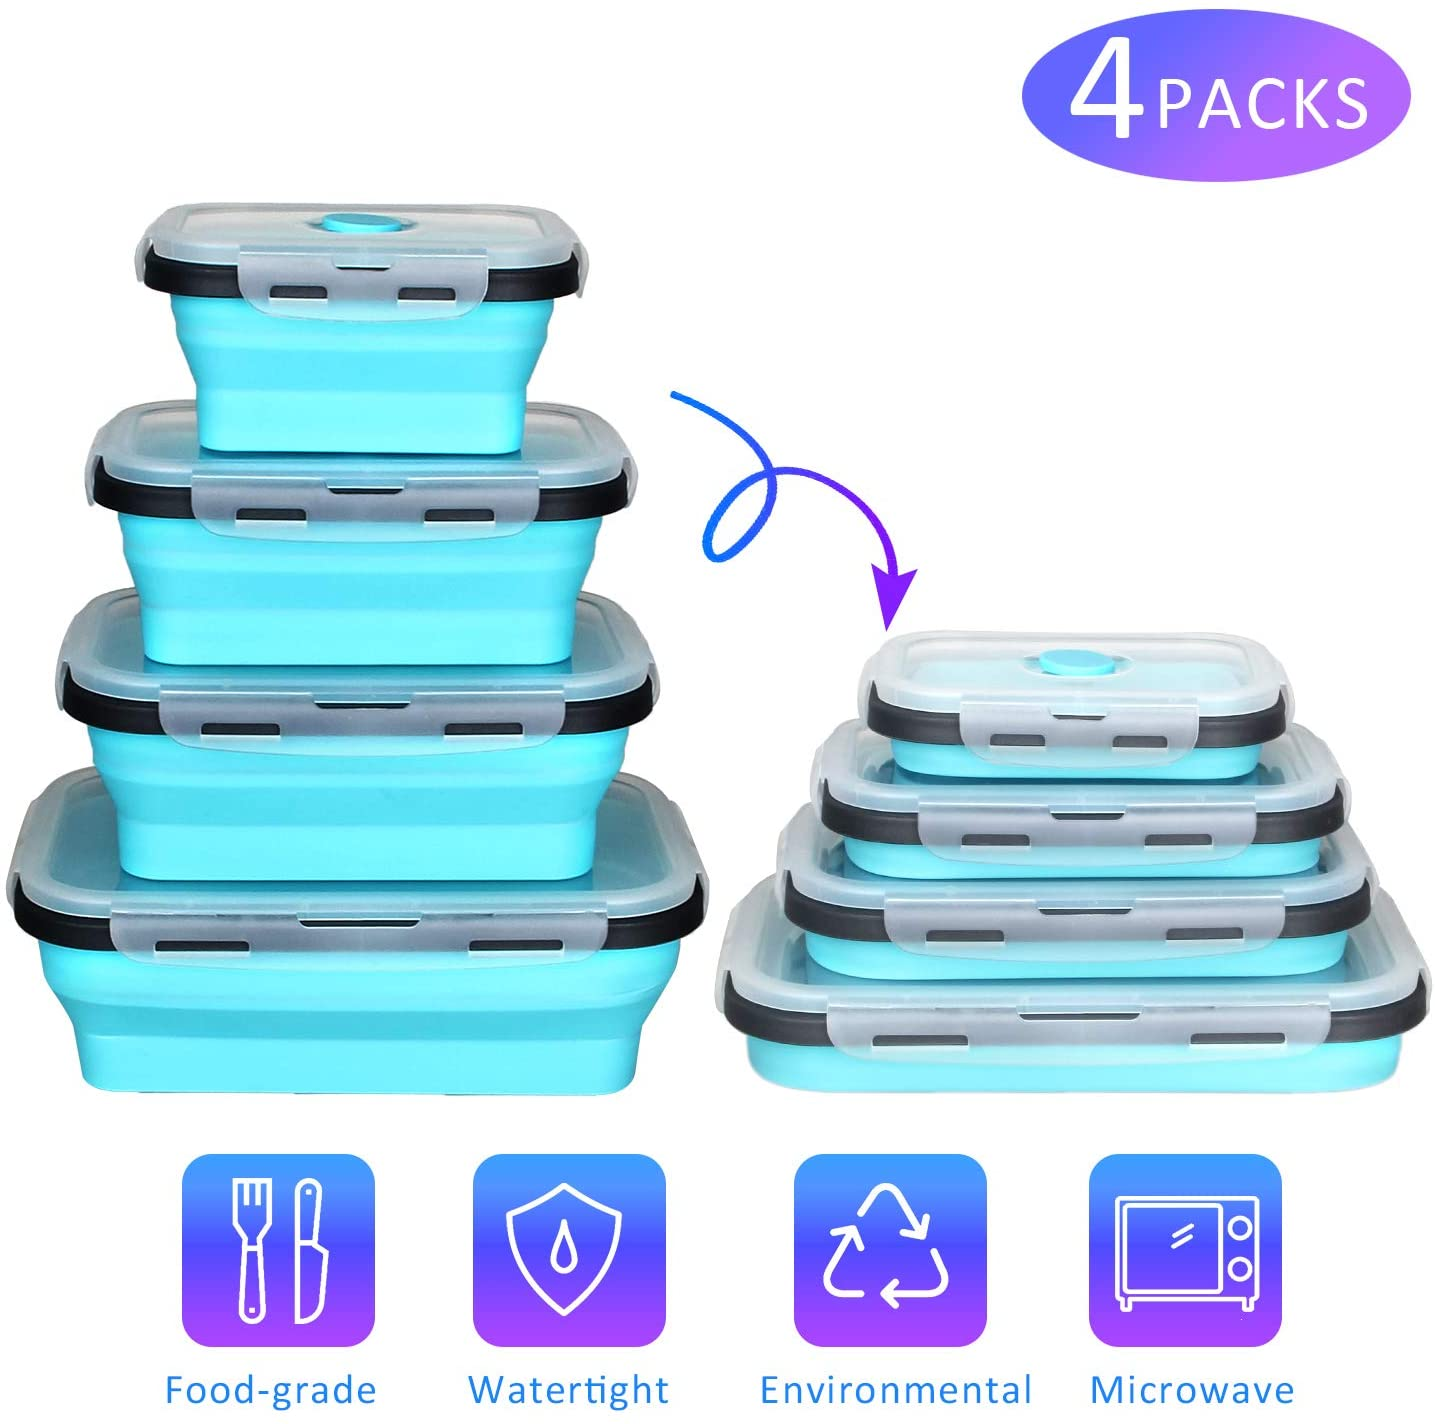 Silicone Collapsible Food Storage Containers,CREPOW Set of 4 Silicone Lunch box Containers for Kids or Kitchen, BPA Free, Microwave, Dishwasher and Freezer Safe (Blue)